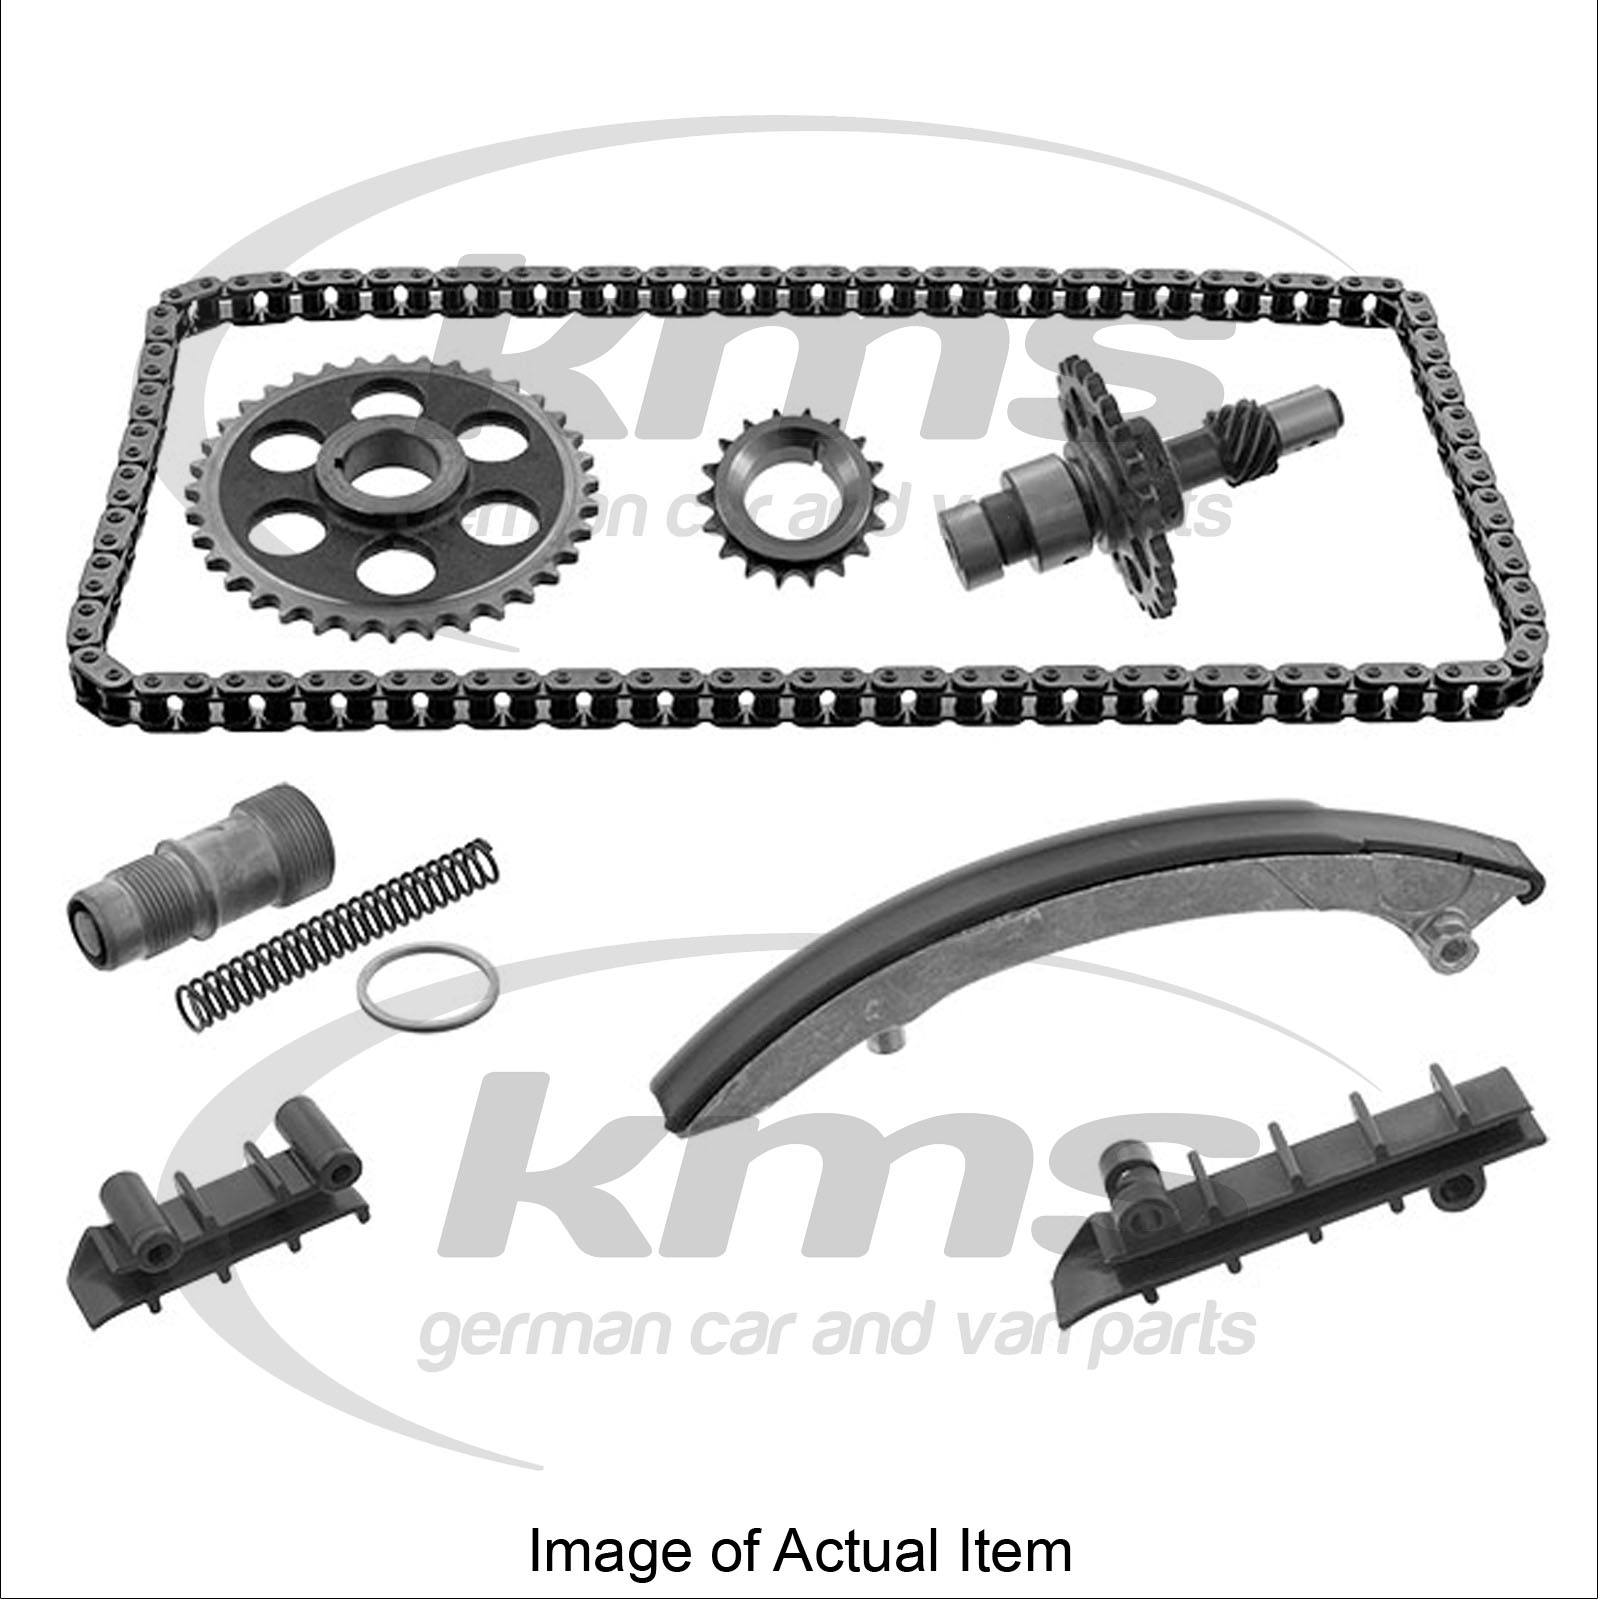 Timing chain kit mercedes benz 190 series saloon 190 w201 for Mercedes benz chain